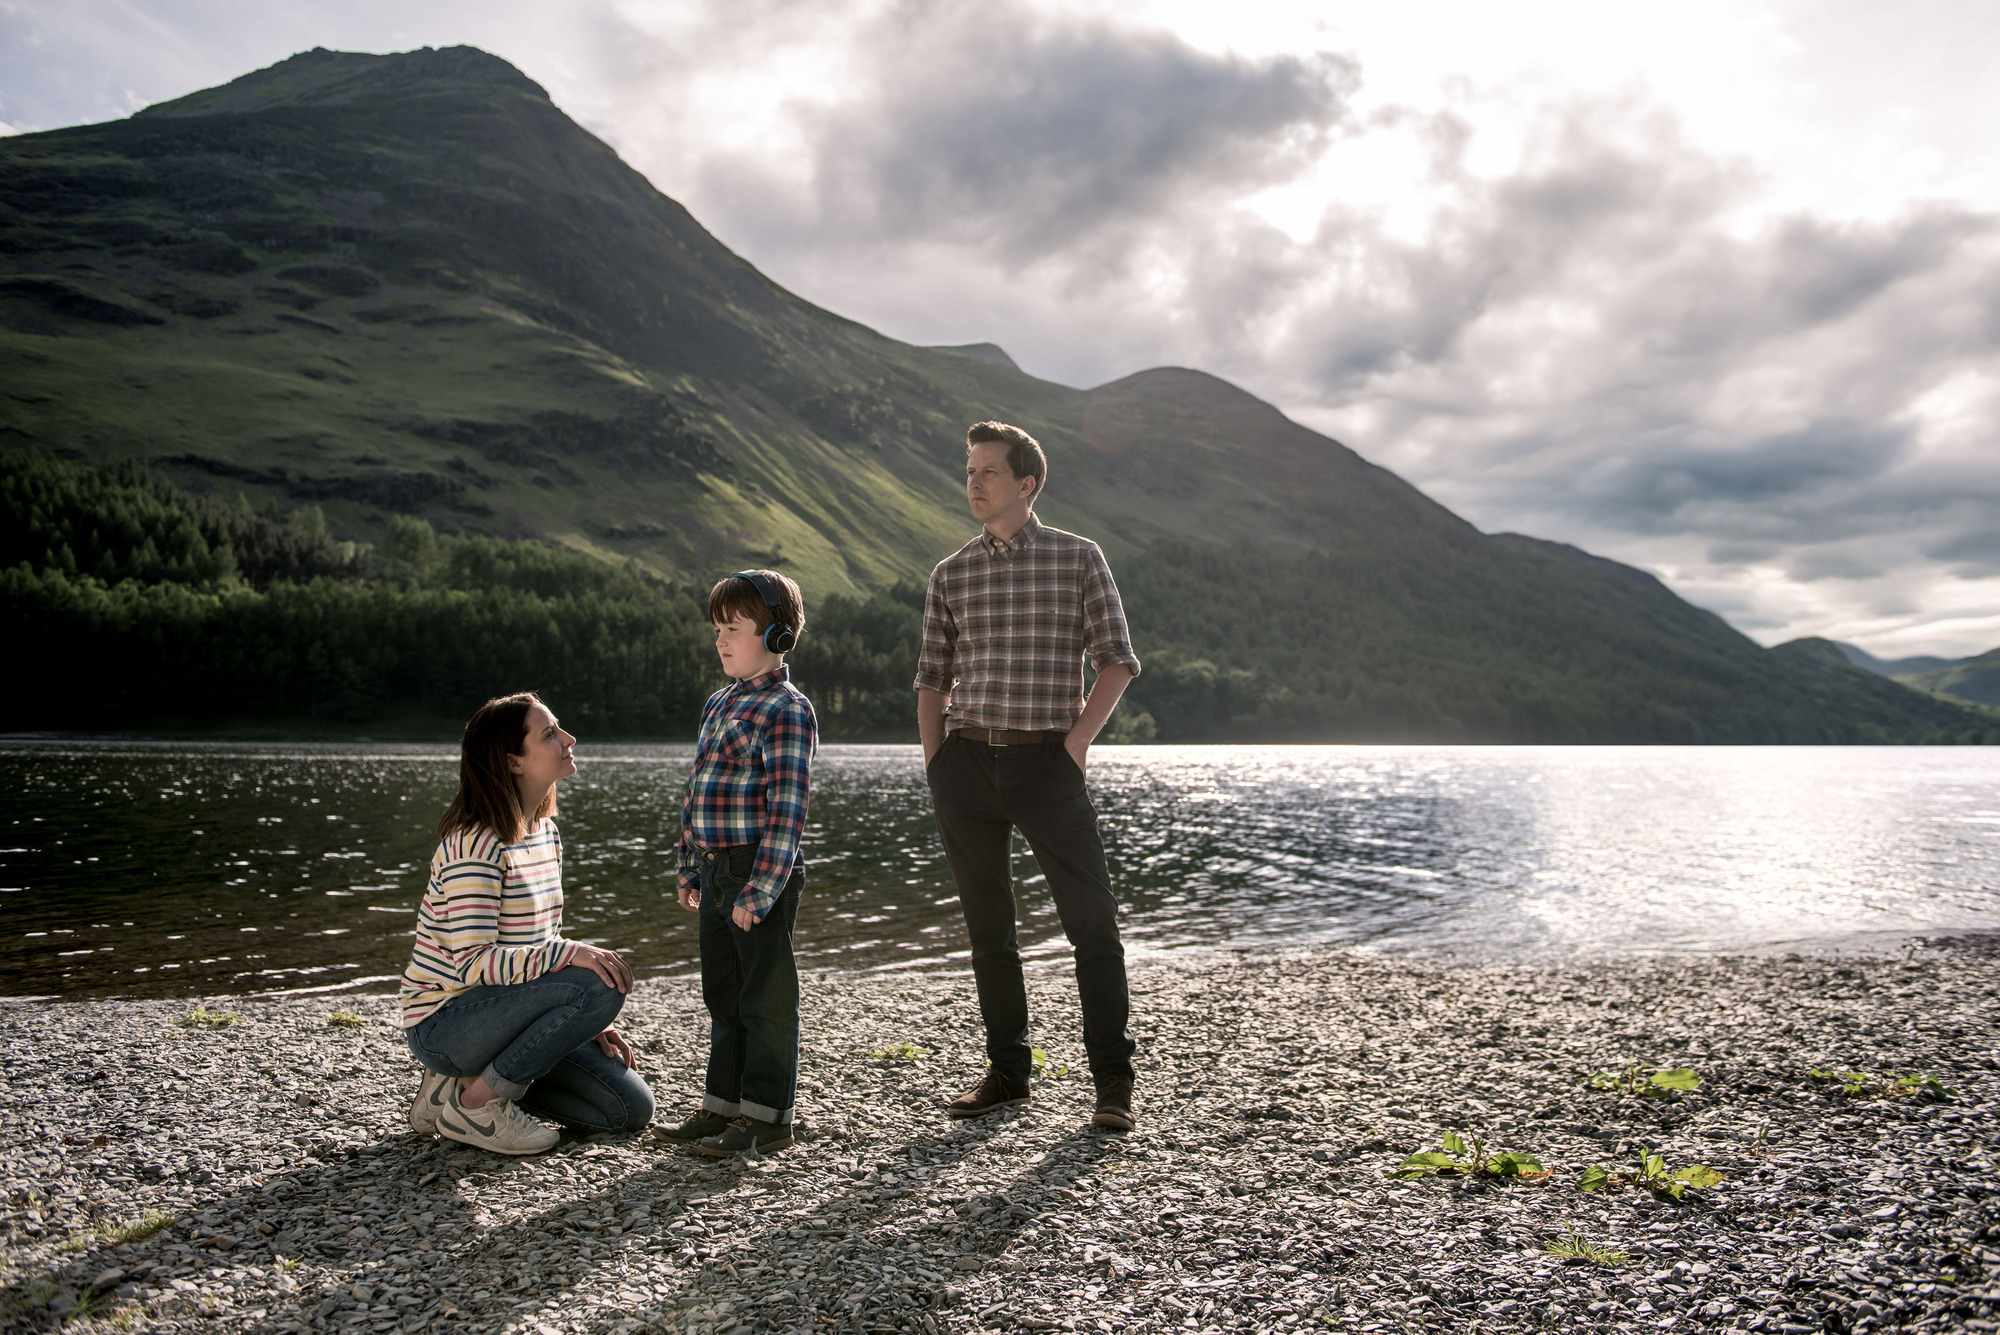 The A Word is set in the Lake District